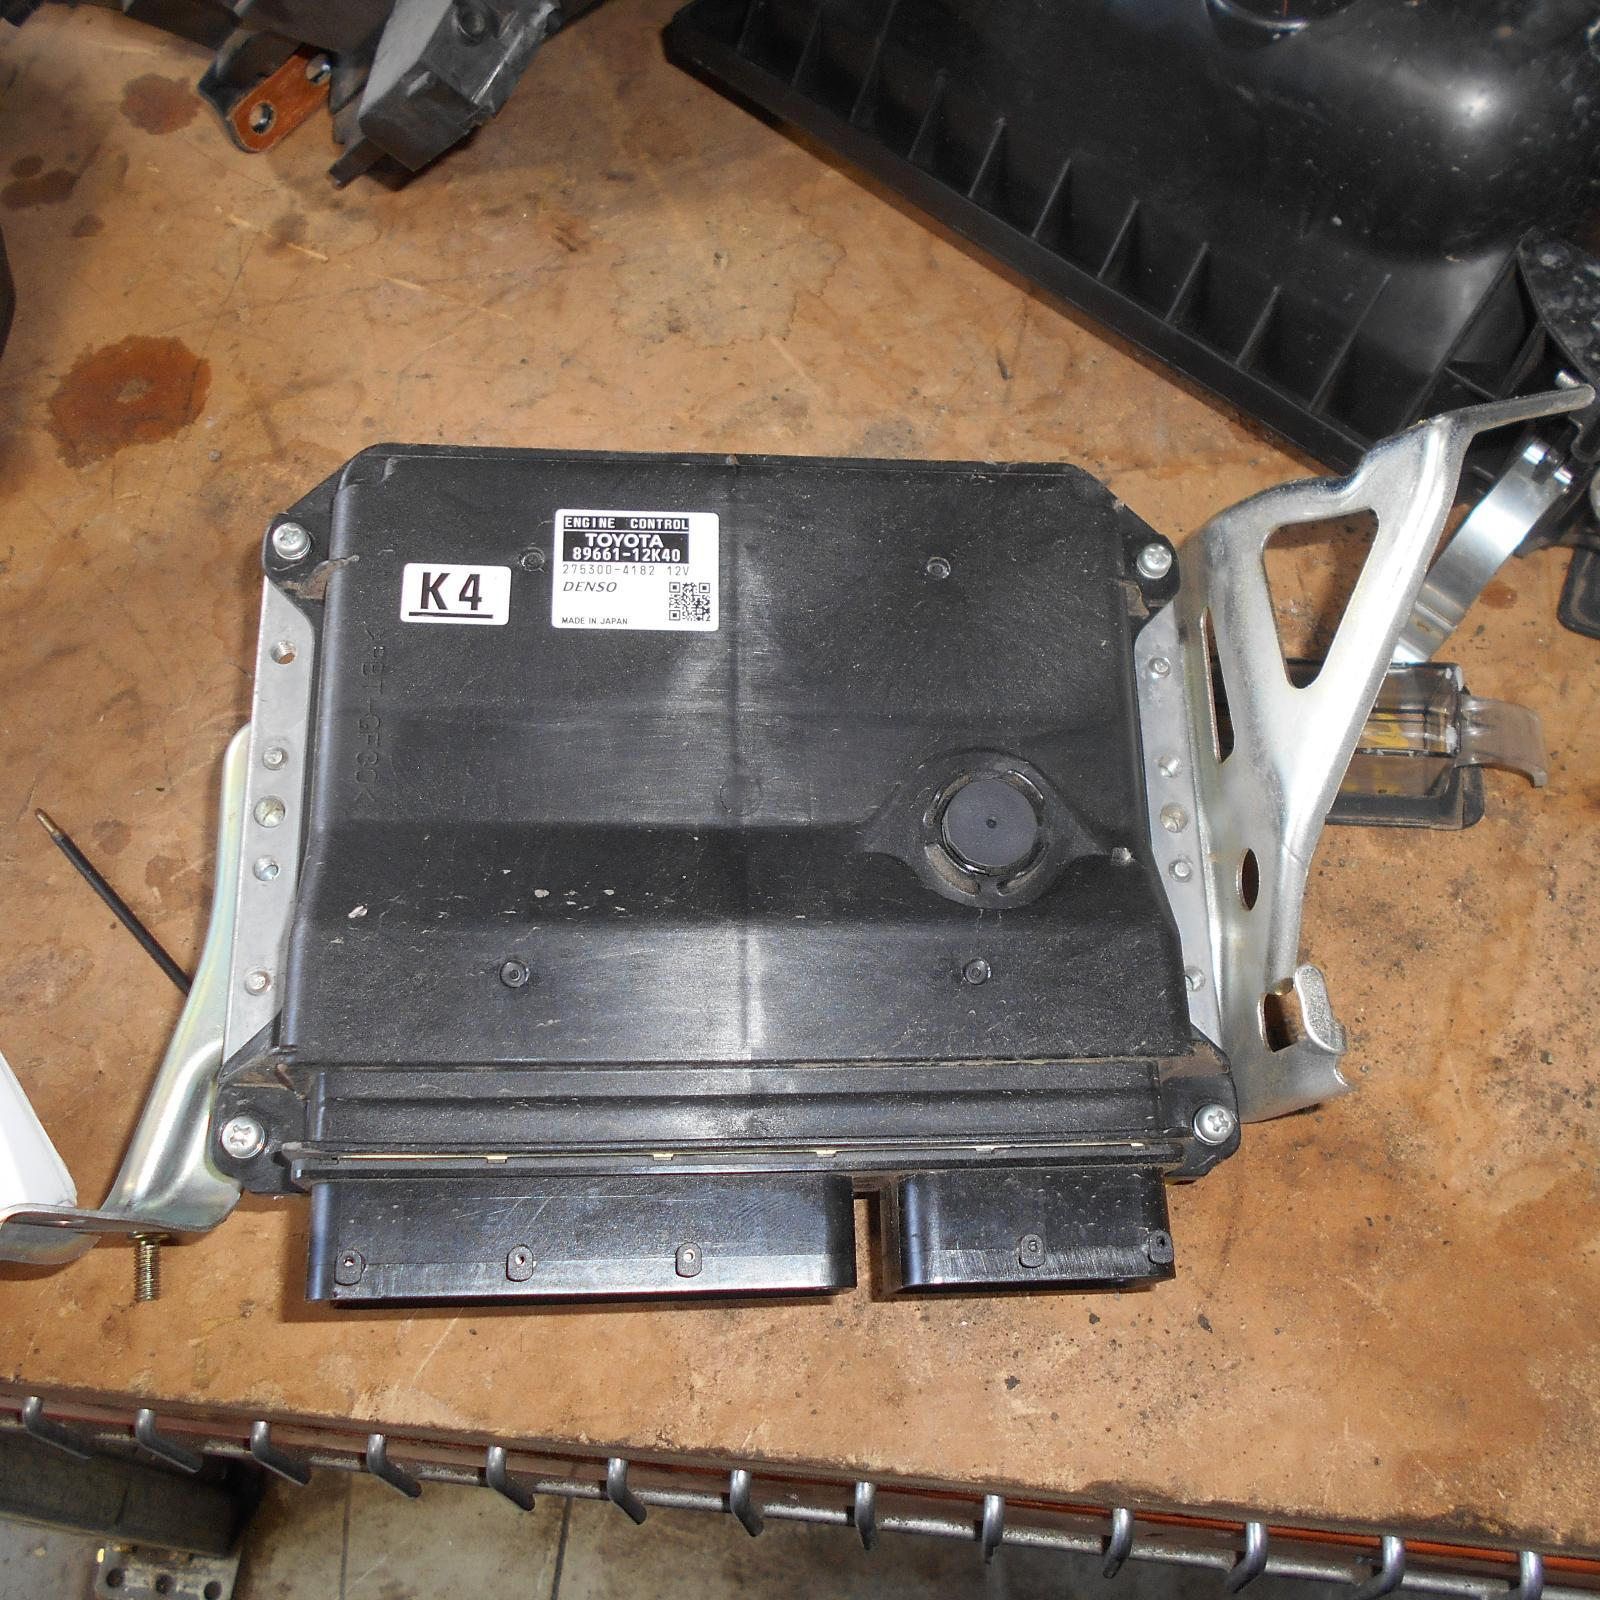 TOYOTA COROLLA, Ecu, ENGINE ECU, AUTO T/M TYPE, 89661-12K40, ECU ONLY, ZRE152/153R, 03/07-10/13